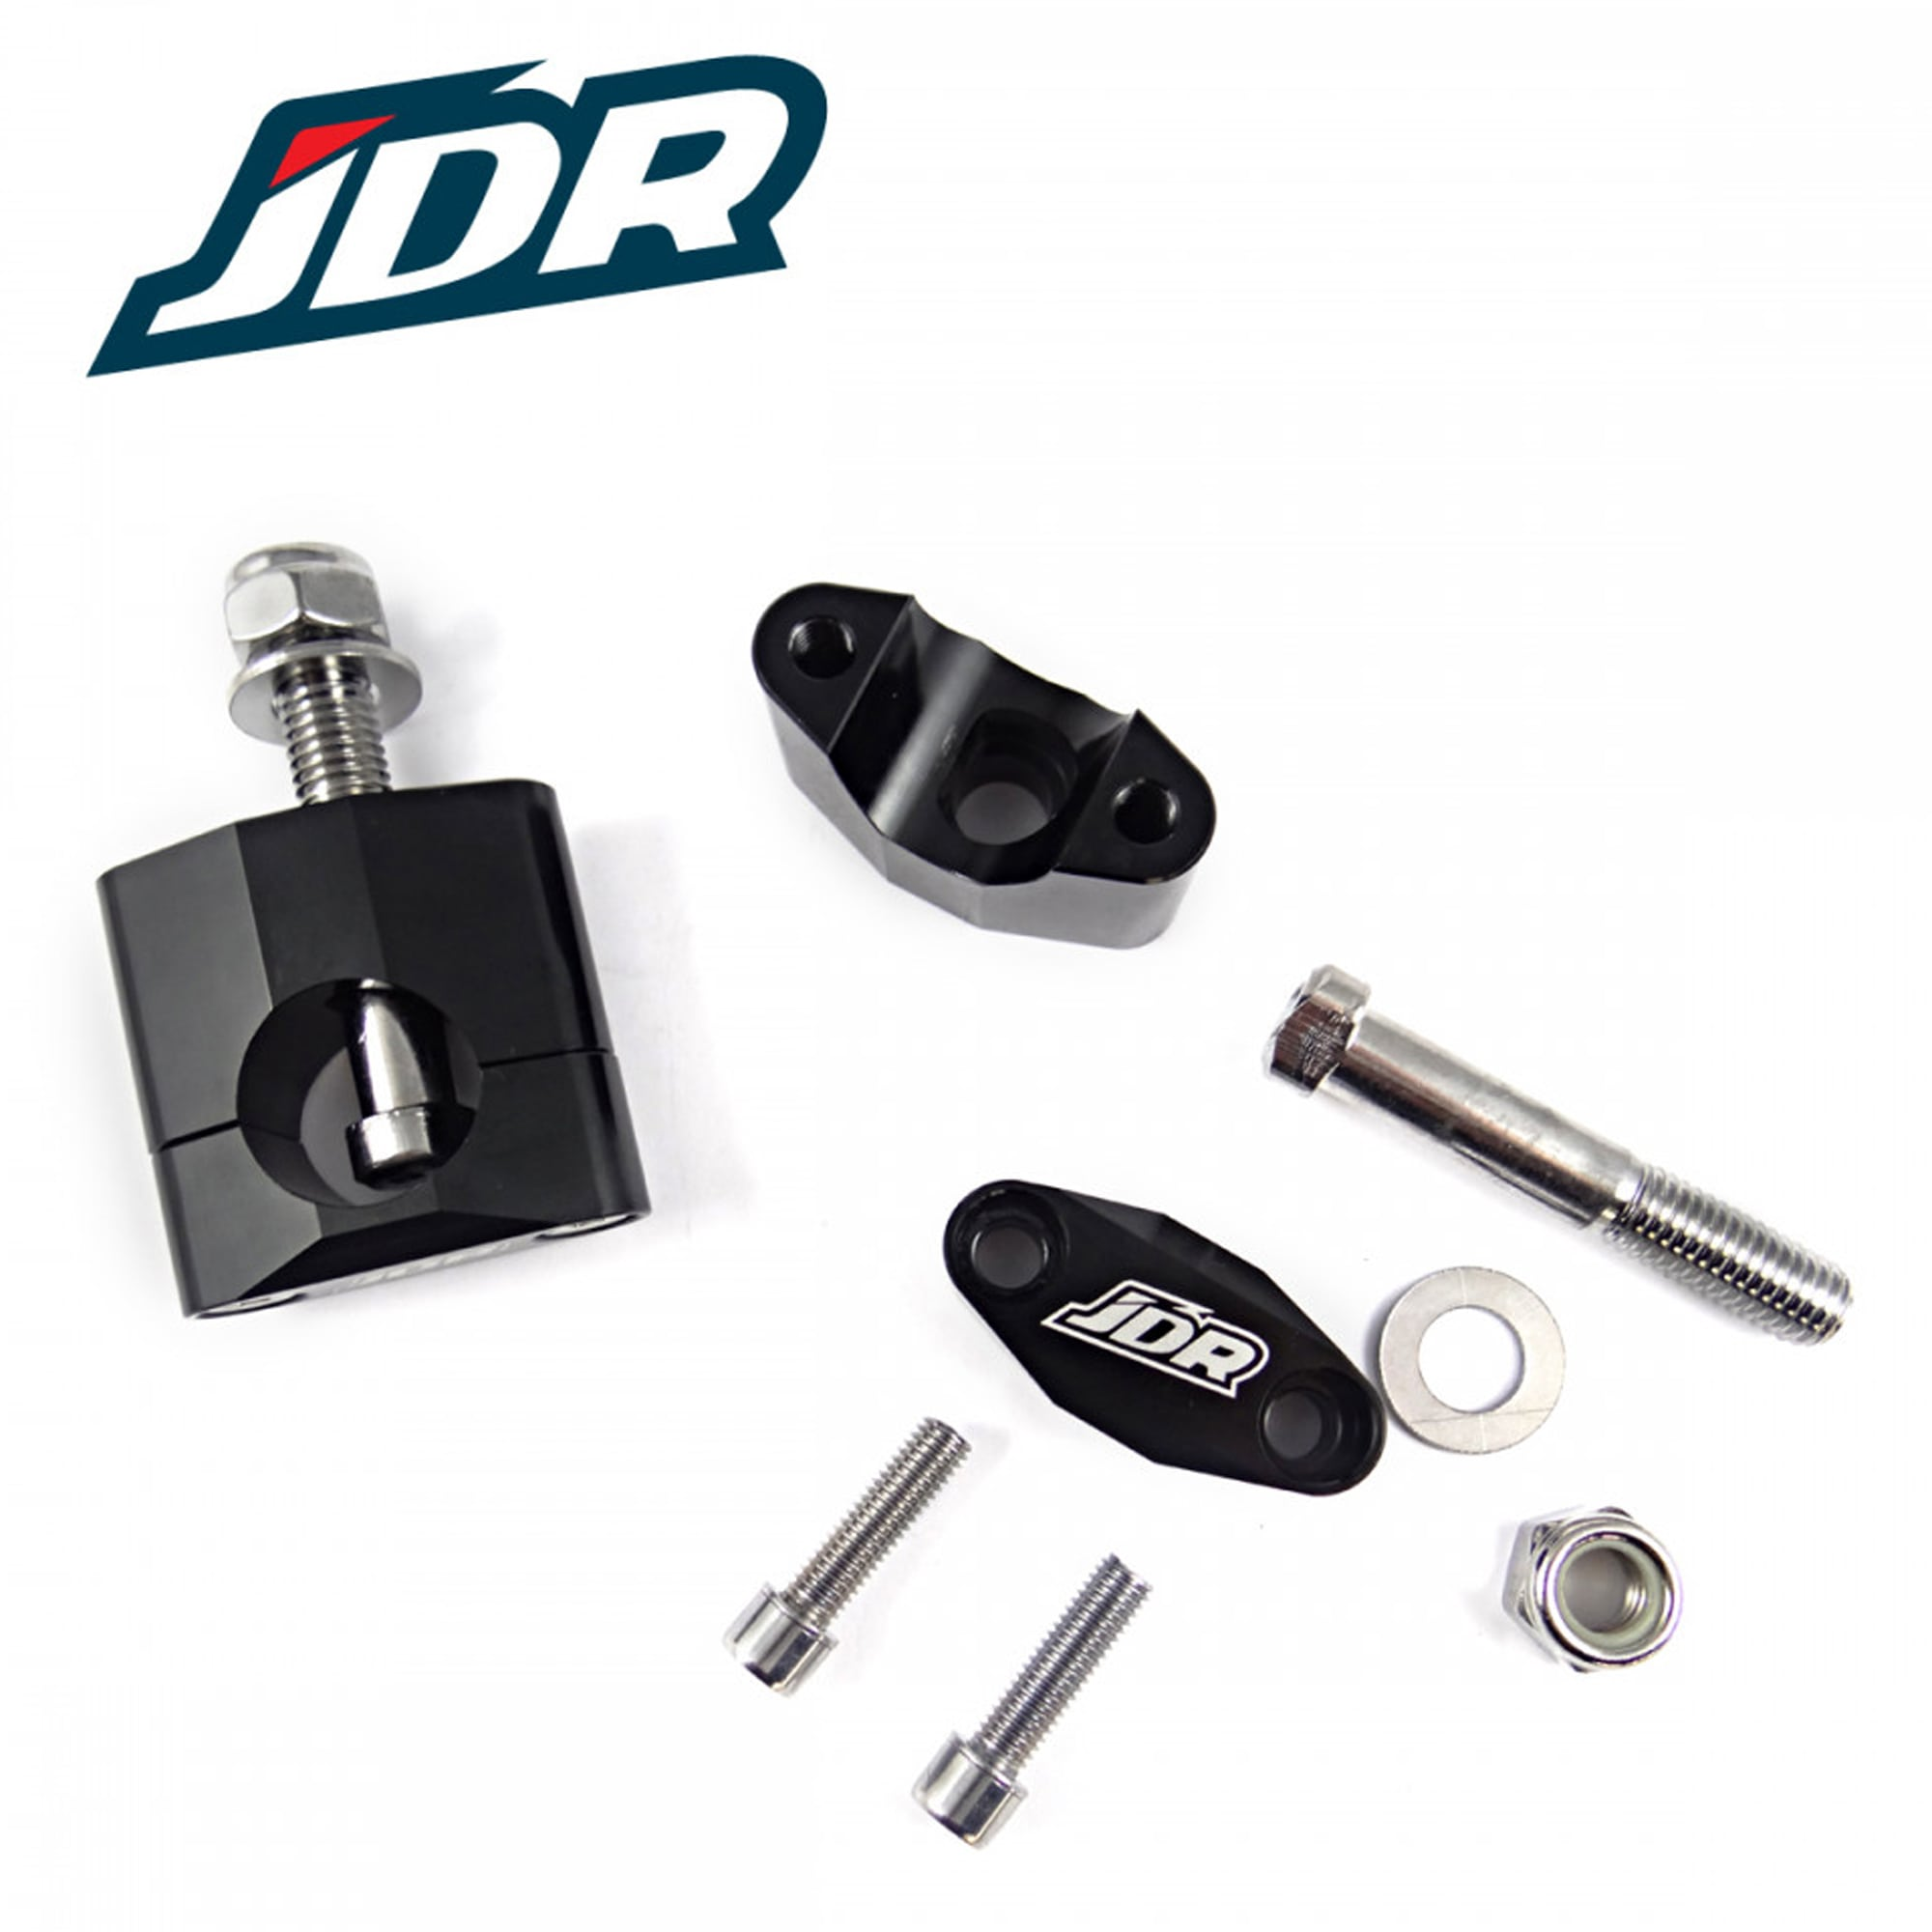 Adaptador de Guidão JDR 28,6mm  - HP Race Off Road